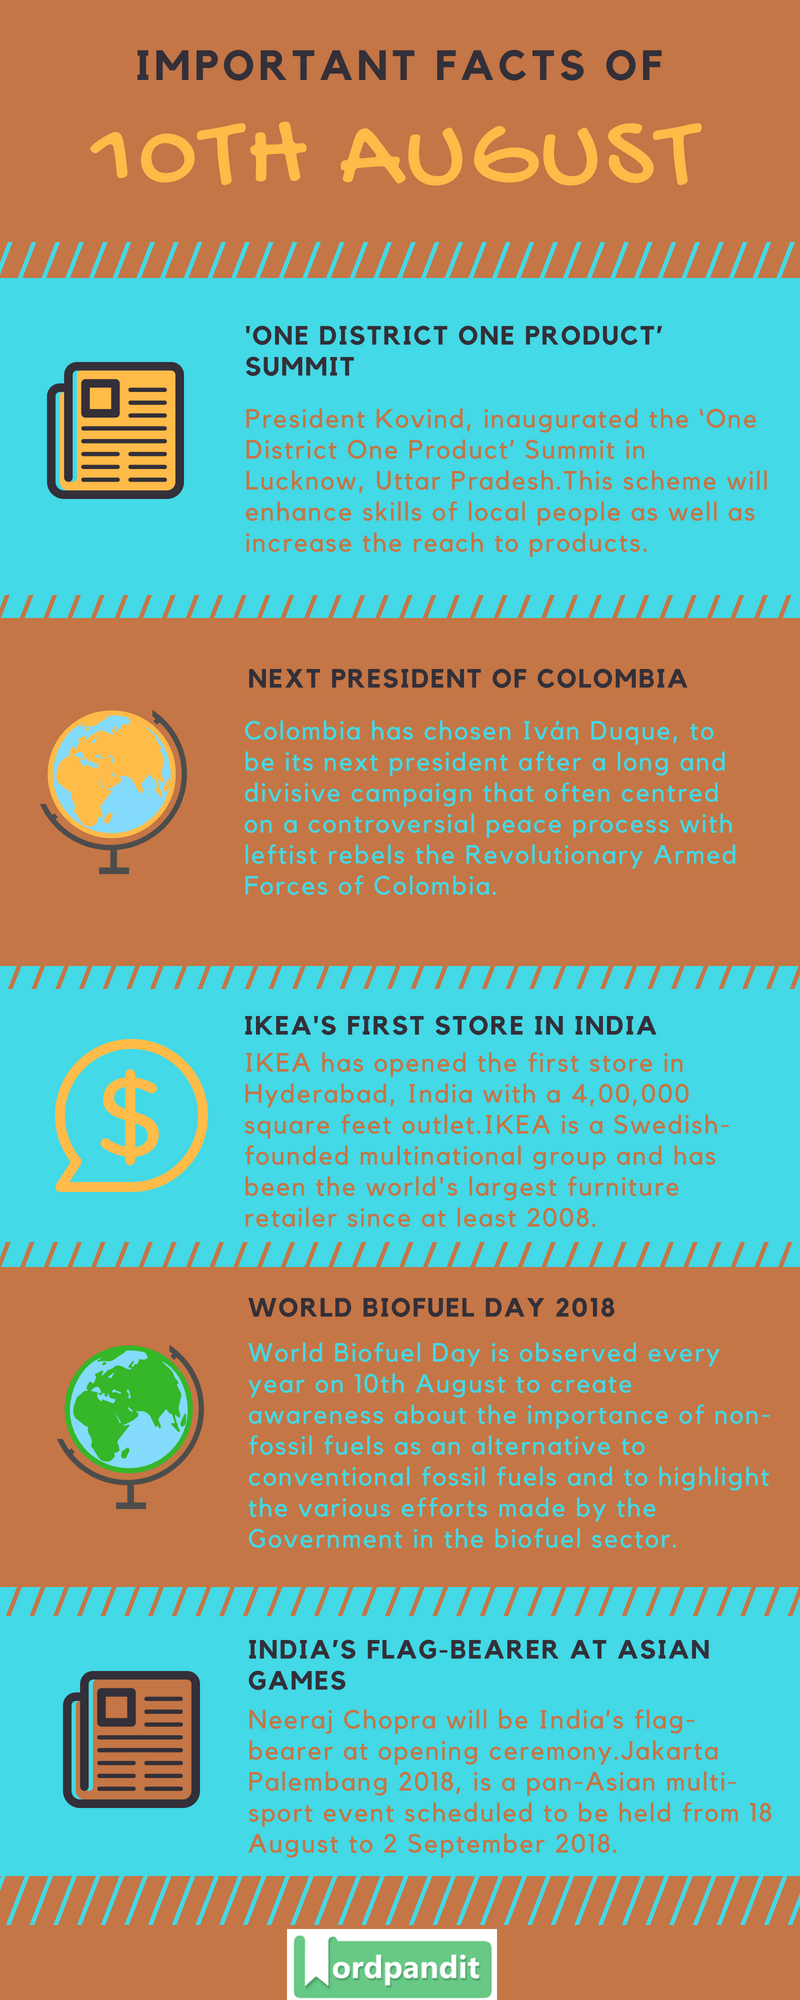 Daily Current Affairs 10 August 2018 Current Affairs Quiz August 10 2018 Current Affairs Infographic